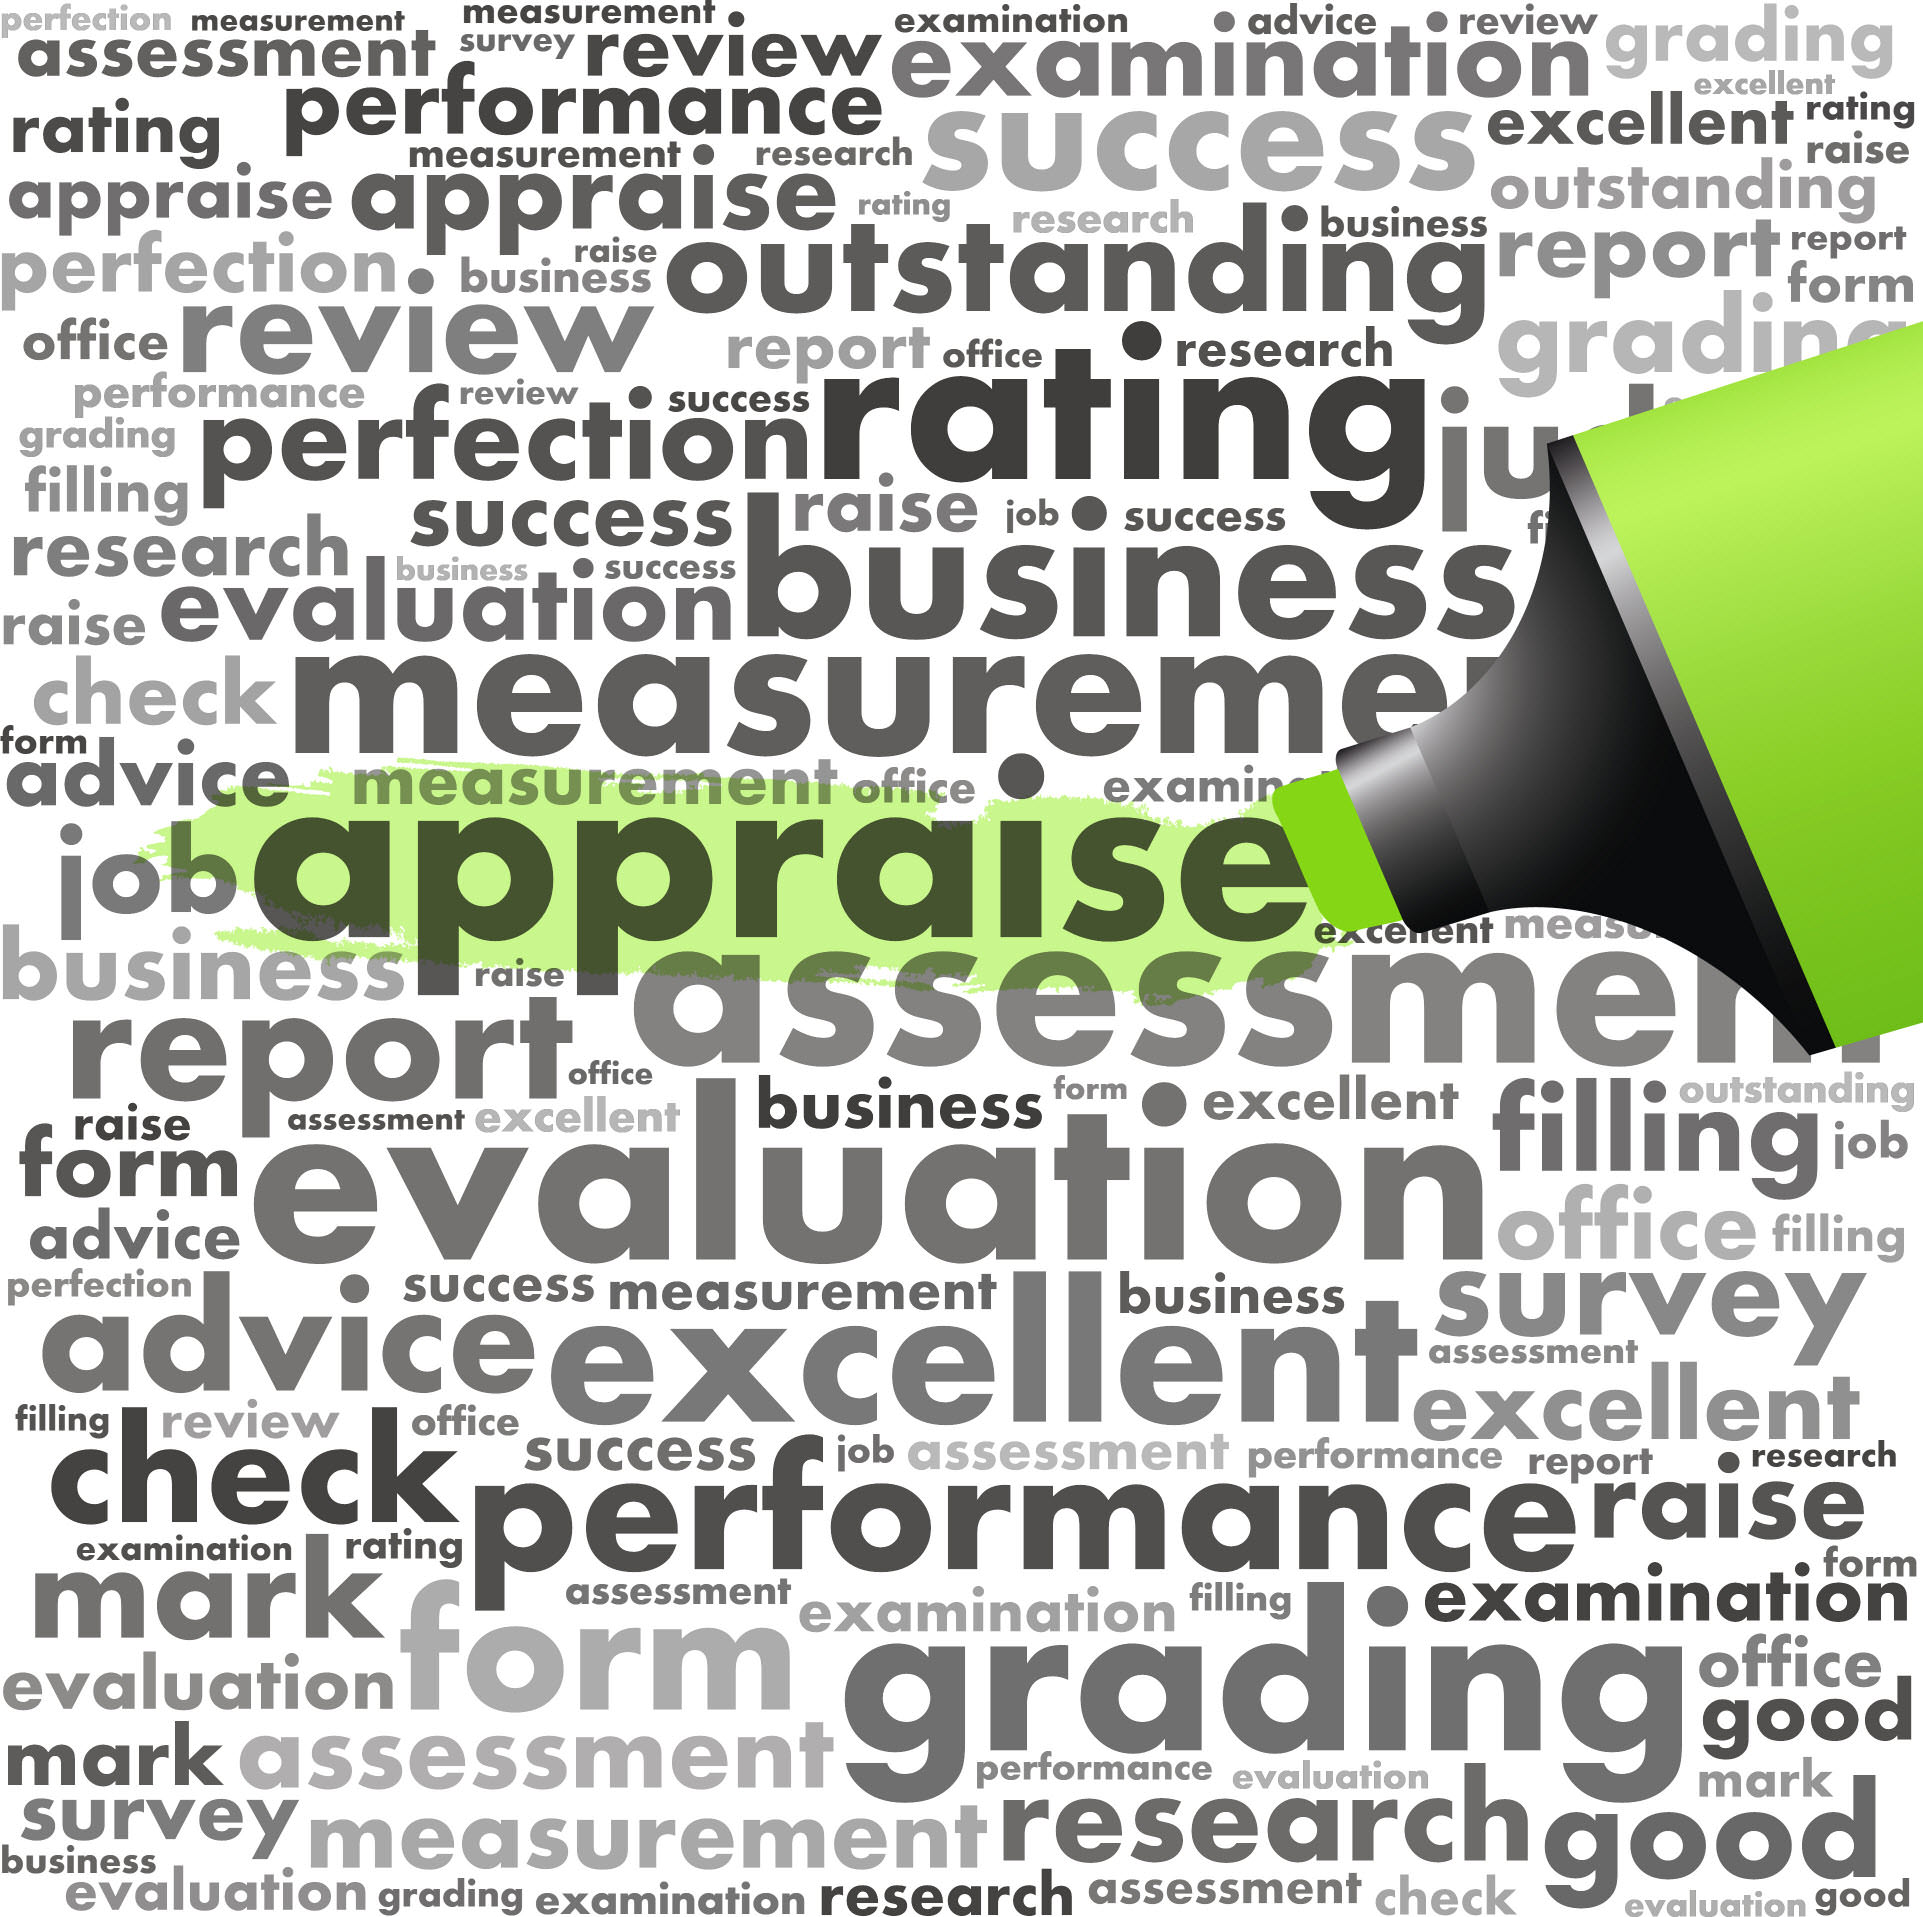 Performance appraisal definitions the performance appraisal system